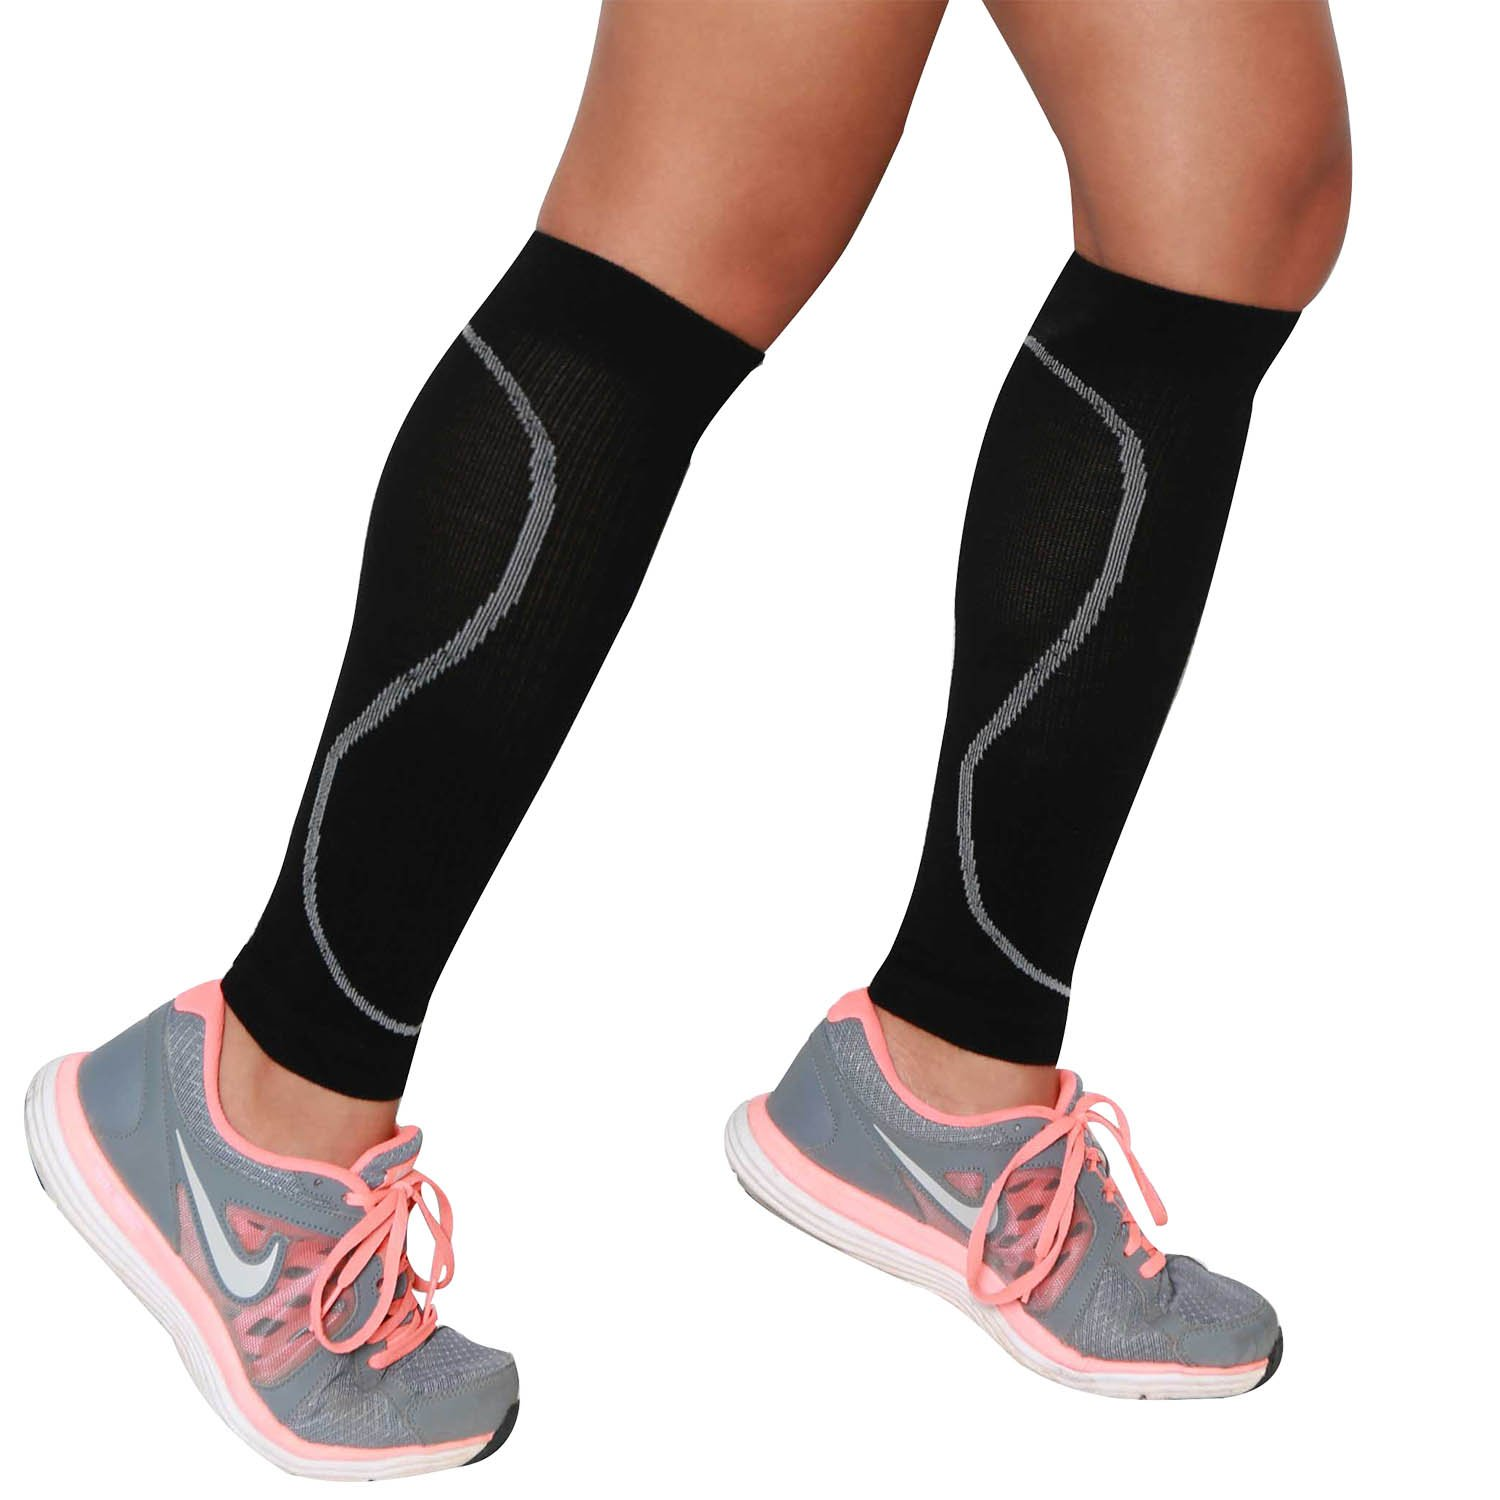 Compression Leg Sleeves - Leg Sleeves for Runners - Perfect for Jogging, Walking, Basketball, Traveling, and Everyday Wear - Made with Non-Itch Merino Wool